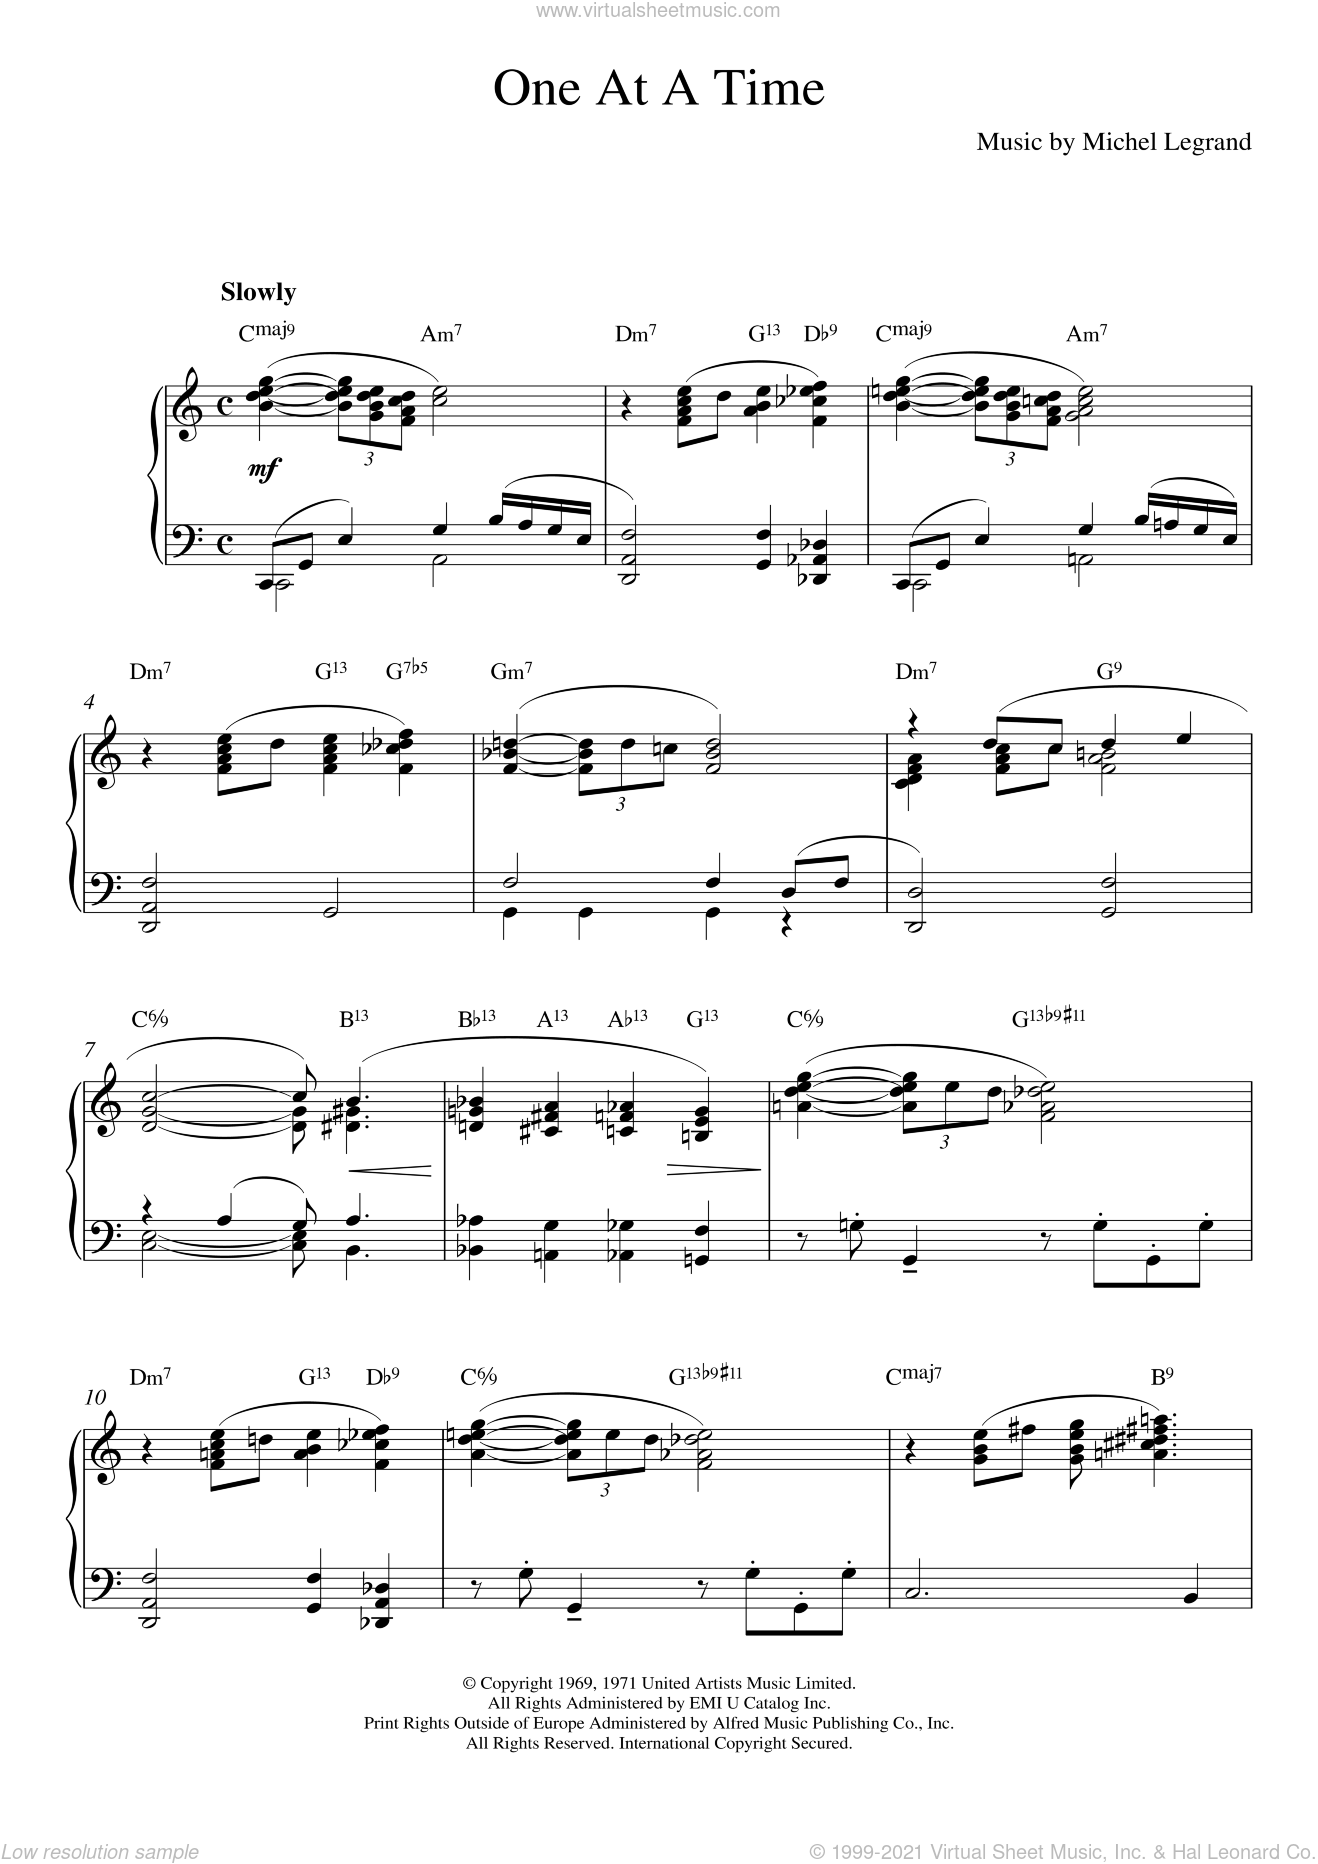 One At A Time sheet music for piano solo by Michel LeGrand, Alan Bergman and Marilyn Bergman, intermediate